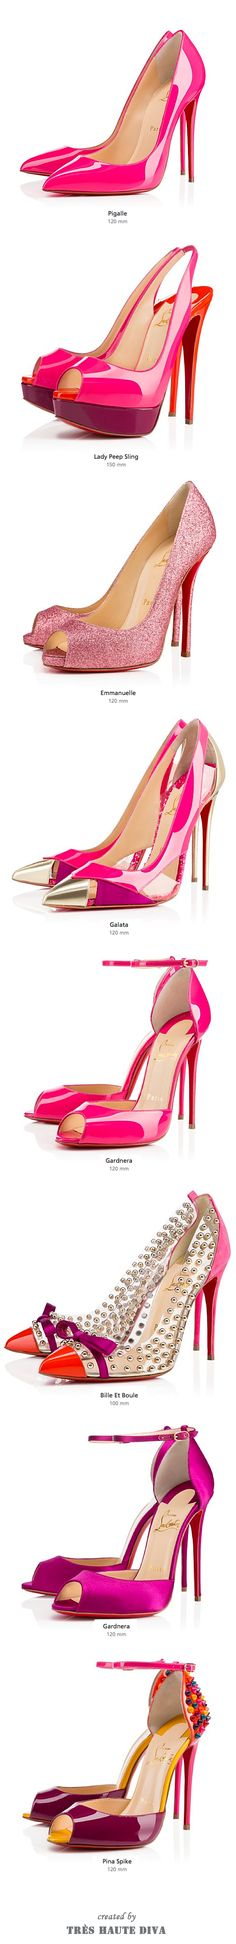 #Christian Louboutin Pinks, Fall 2014